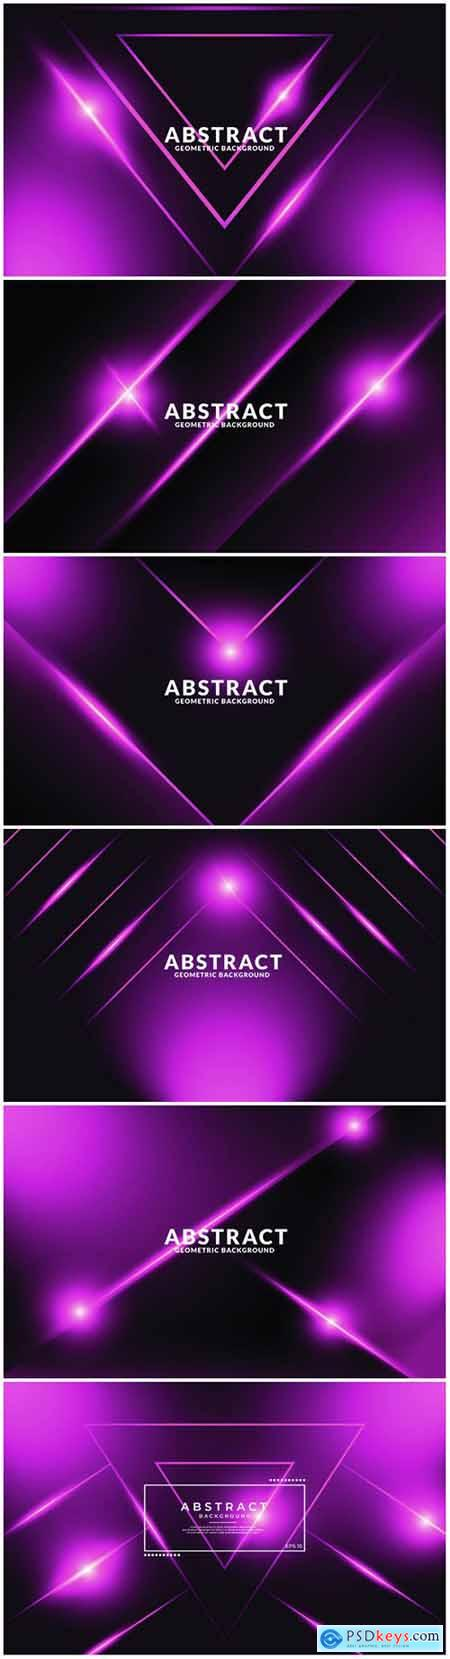 Dark purple realistic abstract geometric background, neon light effect